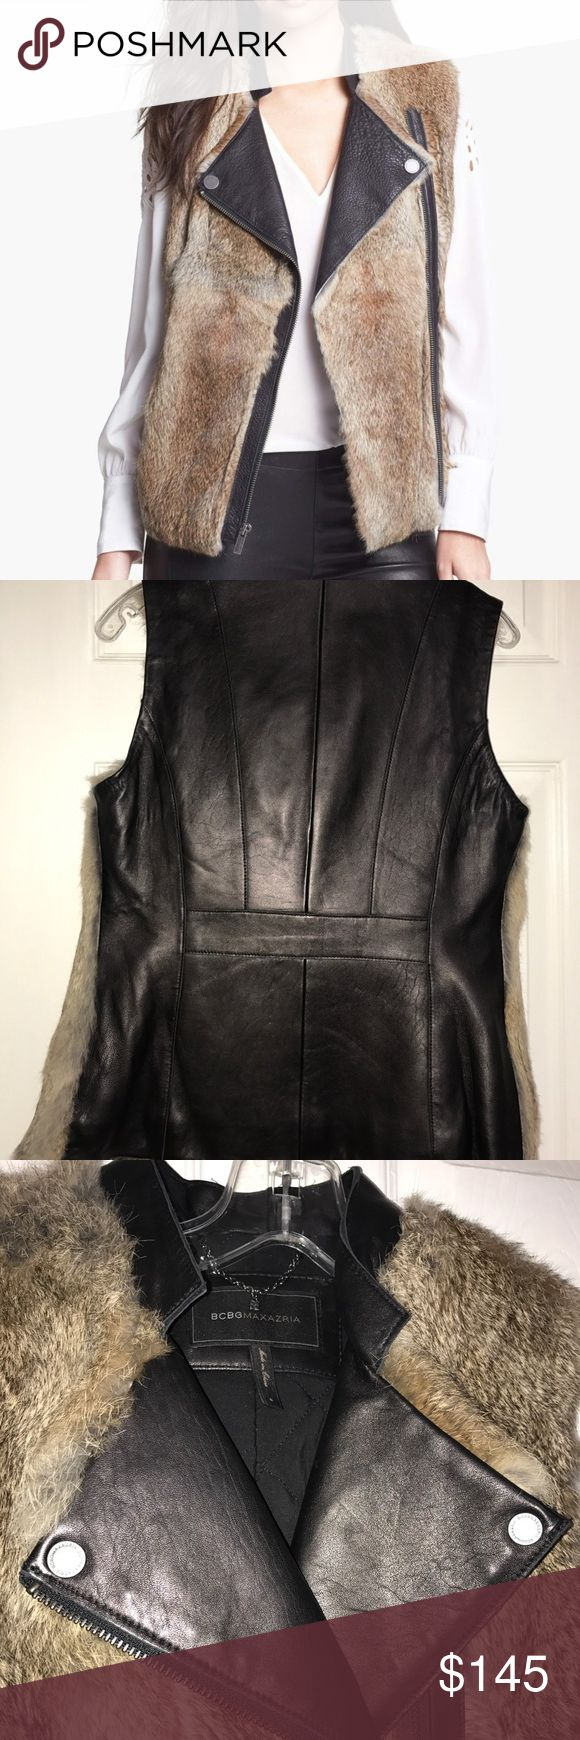 BCBGMaxAzria Rabbit Fur Leather Jacket/Vest SMALL Like New!!! Mint Condition size small   Details Soft rabbit fur with richly nuanced coloring defines the front of a moto-inspired vest complemented with light-catching leather for the back and trim, including snap-down lapels. - Front pockets - Front asymmetrical-zip closure - Genuine rabbit fur construction - Fully lined - Imported Fiber Content Shell: 100% leather Fur: Genuine rabbit fur (origin: China) Lining: 100% rayon Filling: 100%…